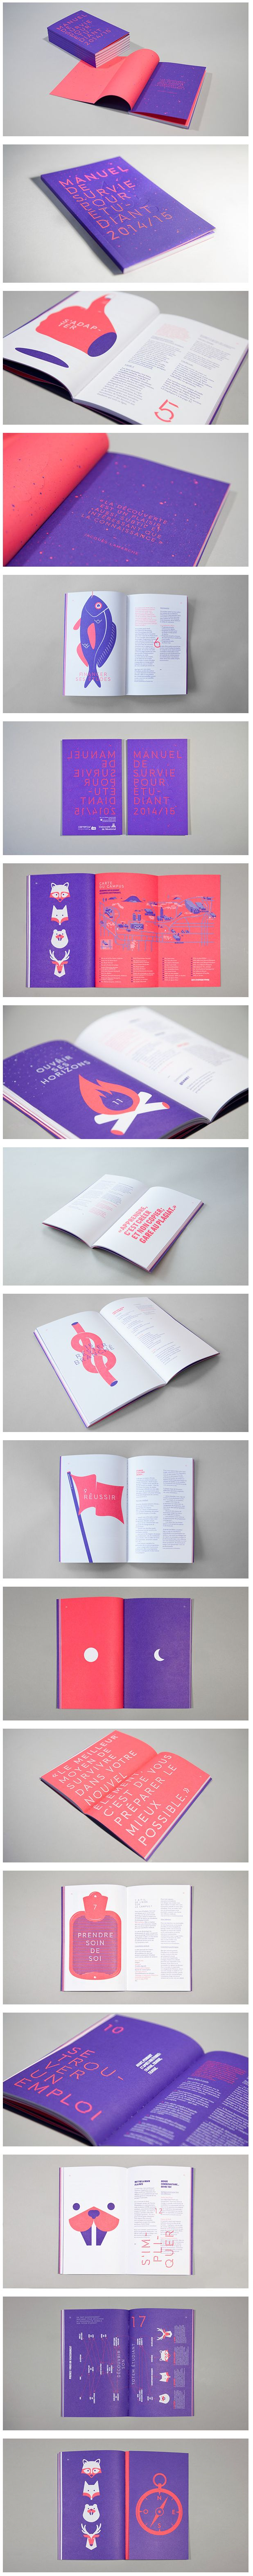 "UdeM Manuel de survie de l'étudiant 2014/2015 by Baillat Cardell & fils Transform a practical guide for new students into a cool original graphic book. Such was the task that the UdeM, Université de Montreal, asked us. Like a boy-scout guide, the ""Manuel de survie pour étudiants"" show the different aspects of school life at UdeM in a fun graphic way.The illustrations and texts give an editiorial perspective to the little book."